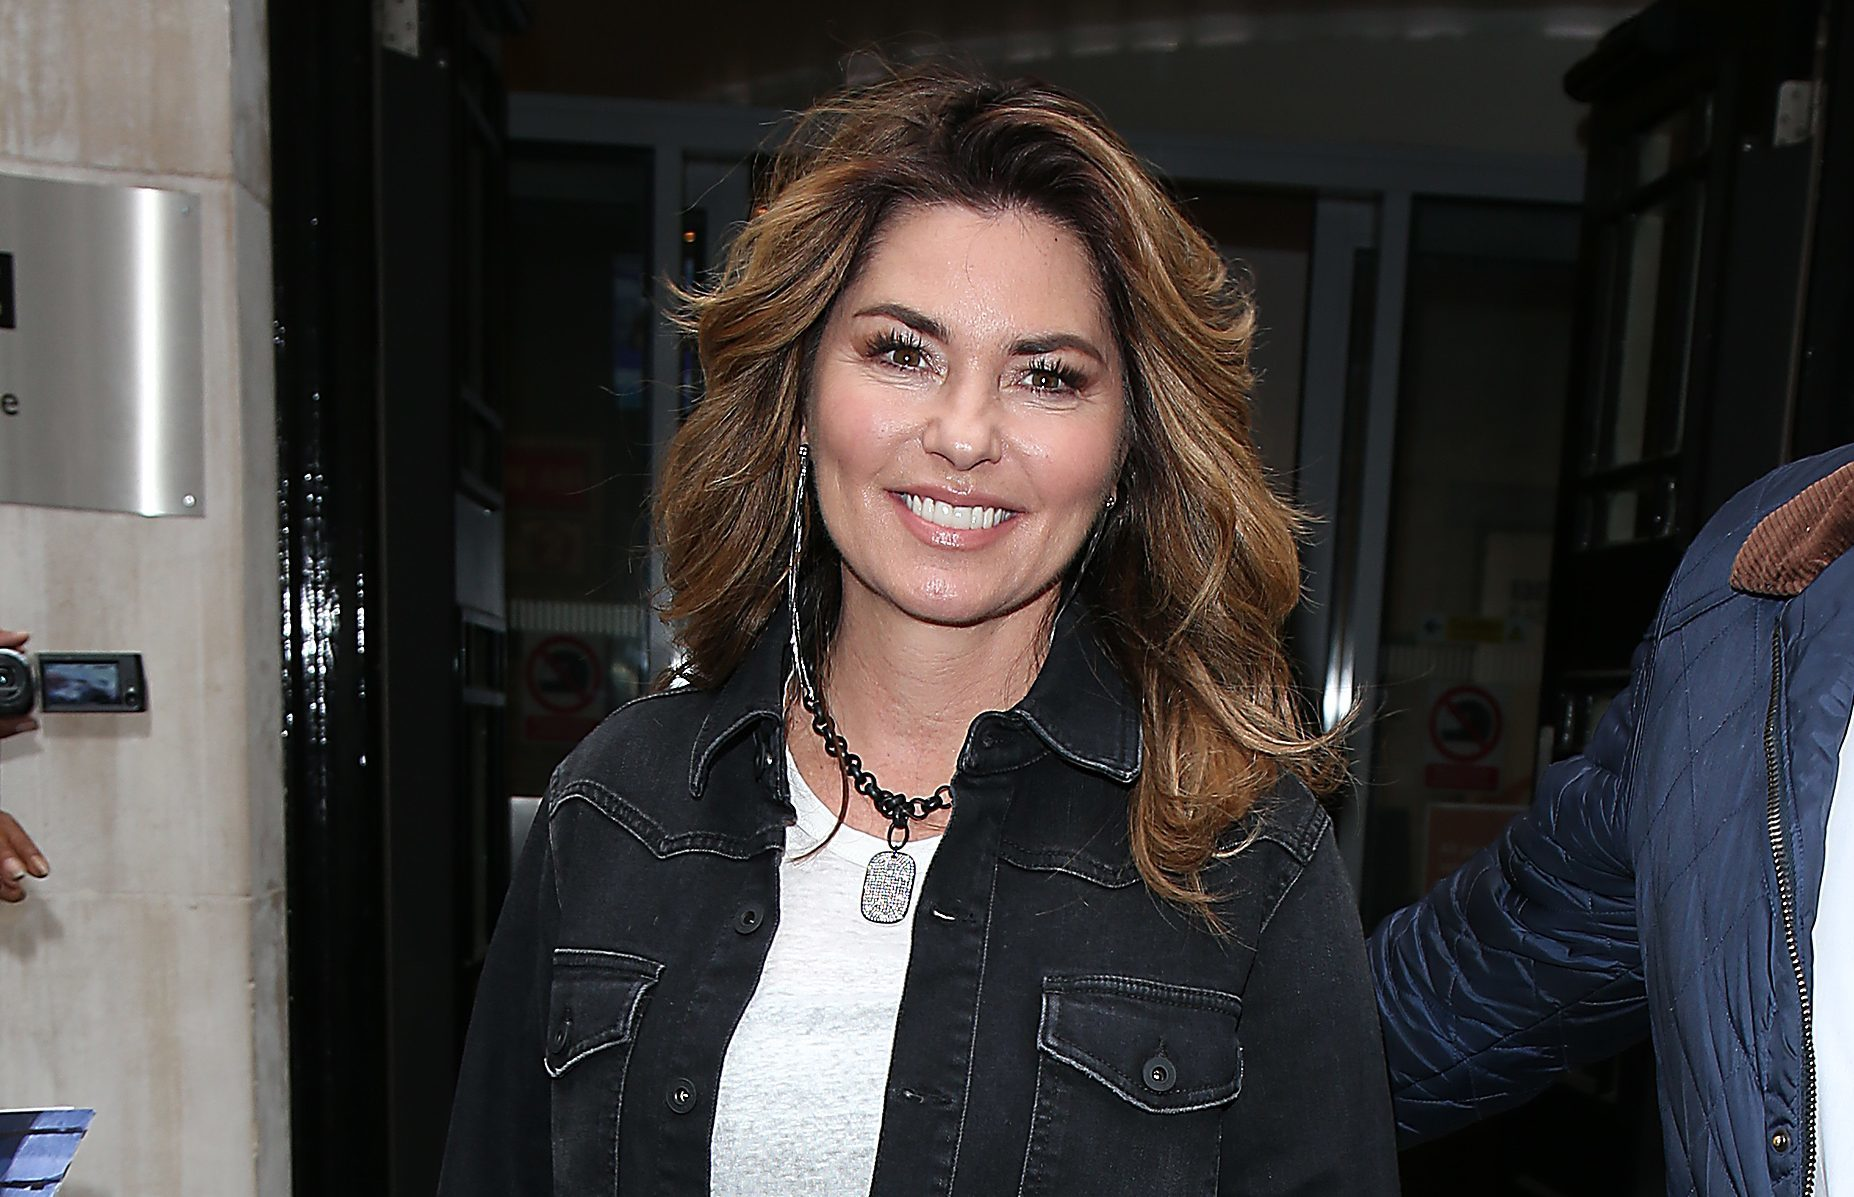 Shania Twain seen at BBC Radio 2 Studios (Neil Mockford/GC Images)